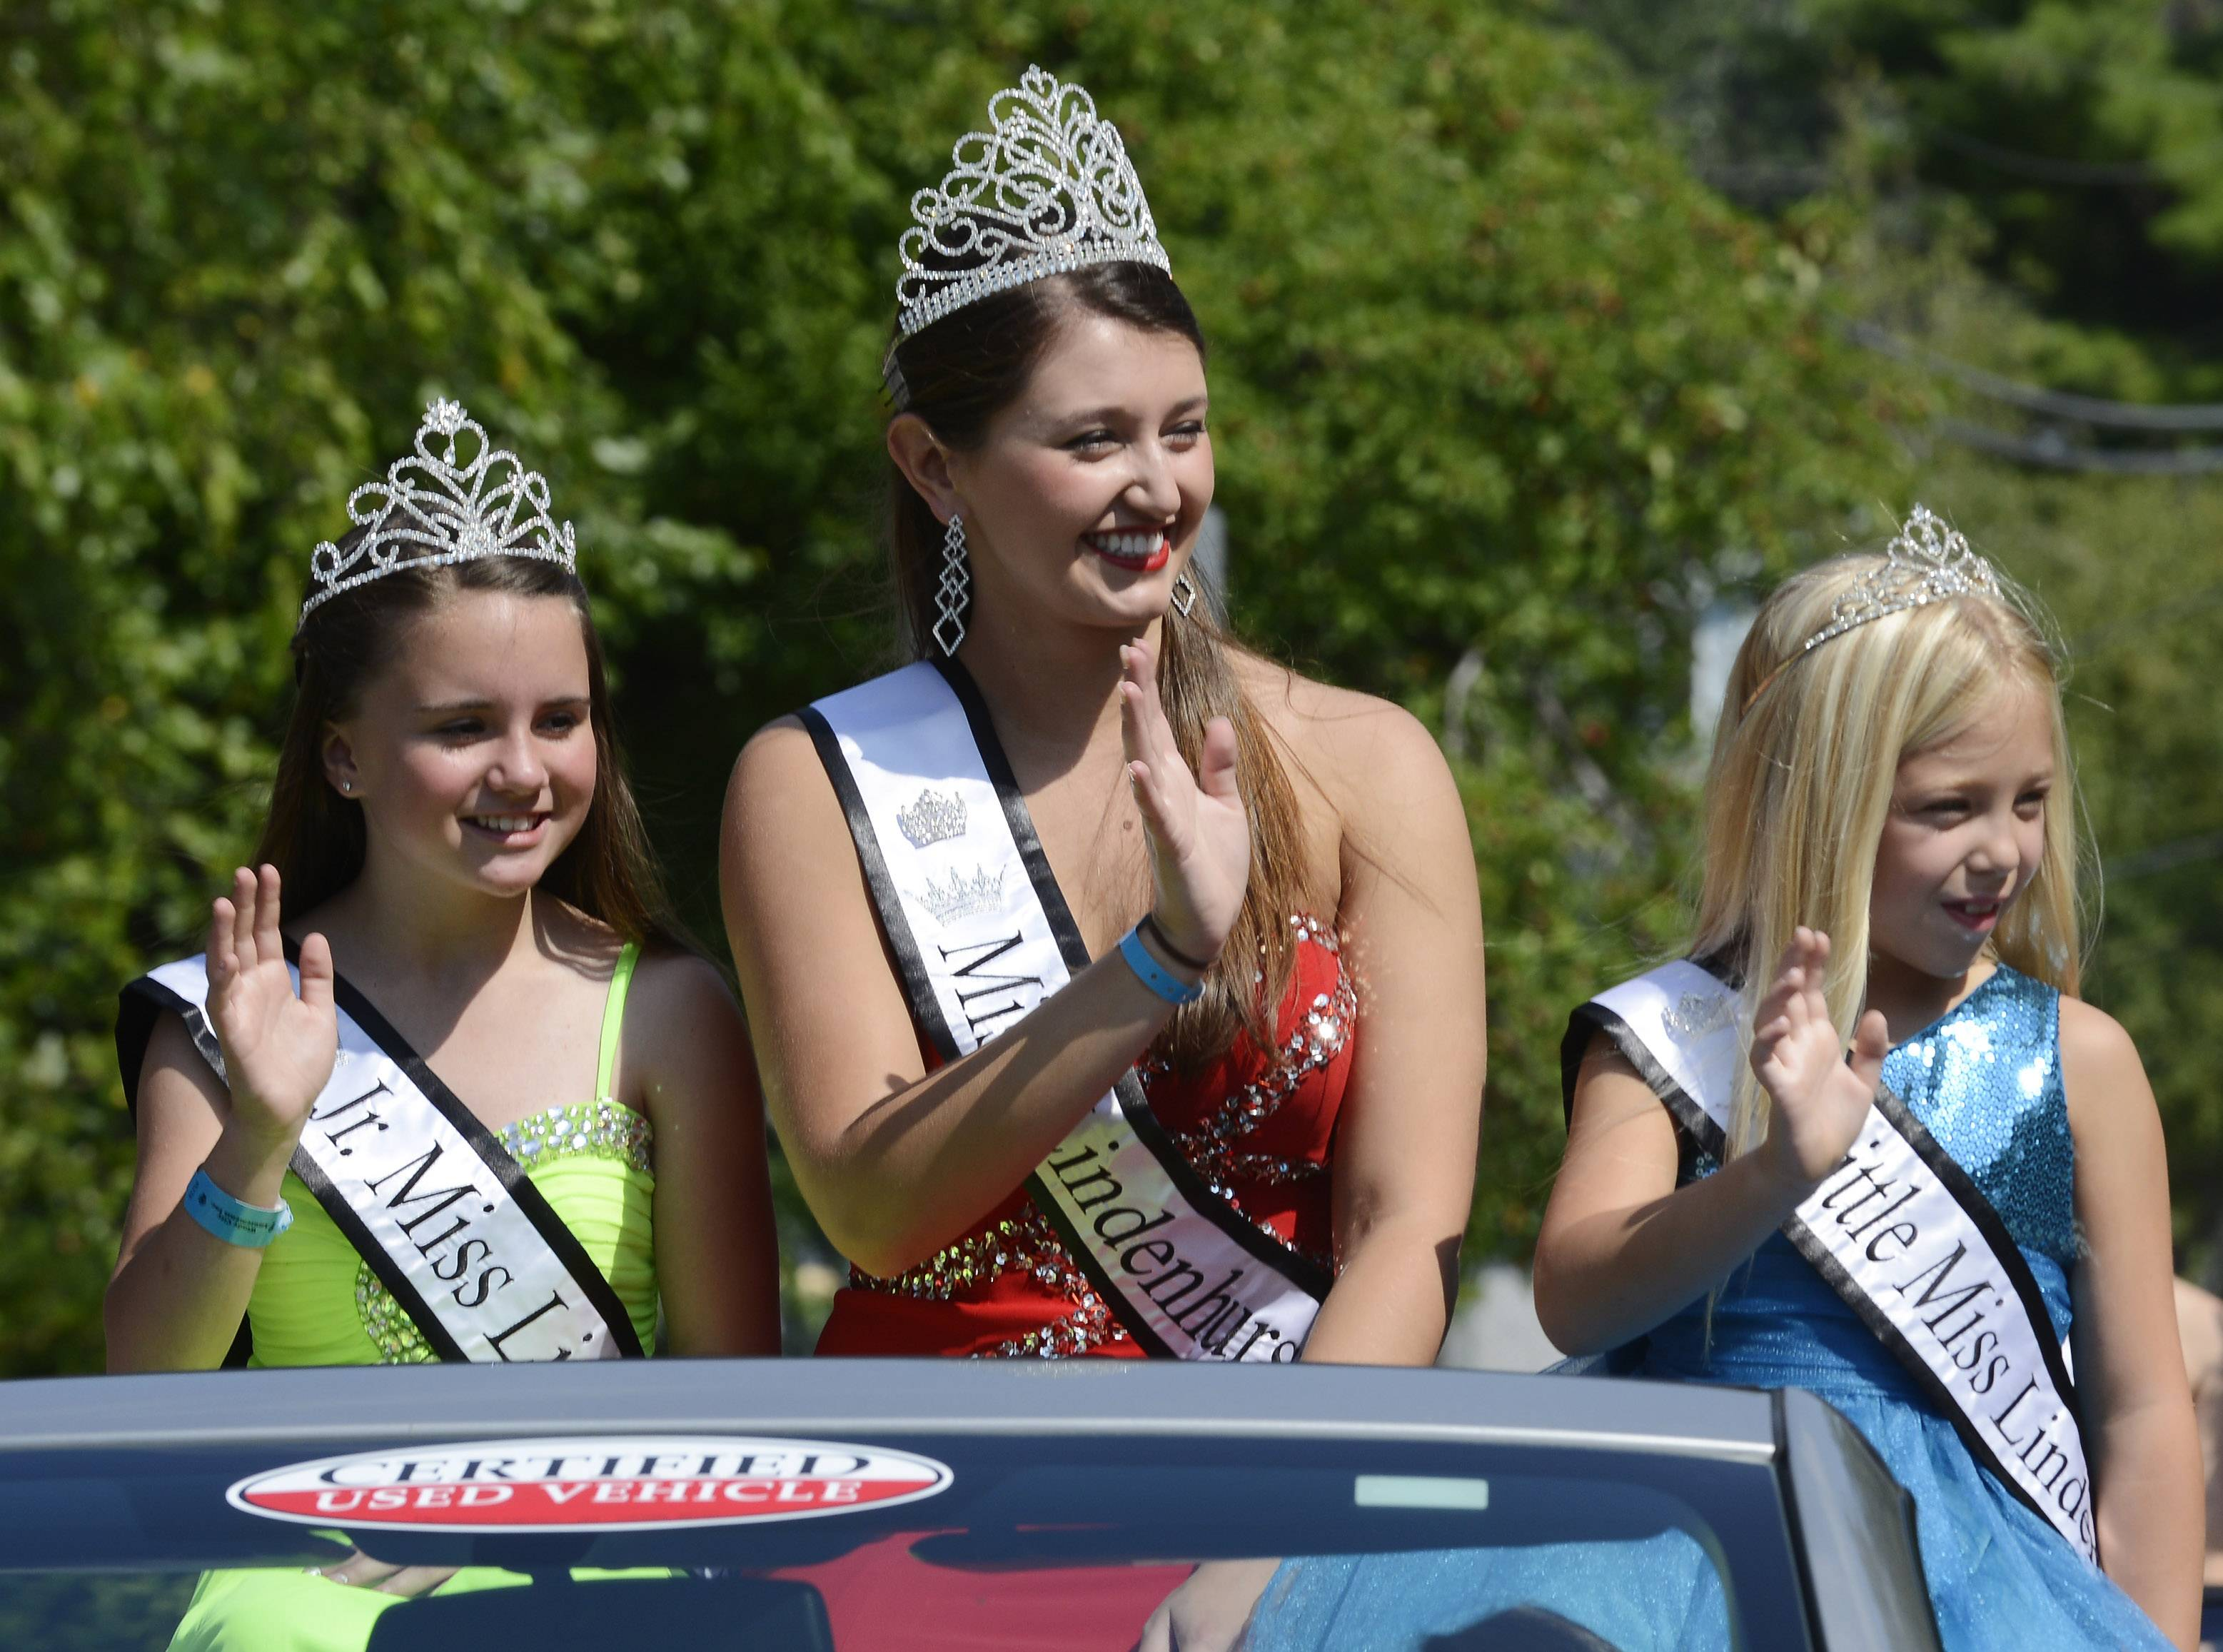 Left to right, Junior Miss Lindenhurst Lilly Burdette, Miss Lindenhurst Megan Wayne and Little Miss Lindenhurst Emma Palmer ride Saturday in the Lindenfest Parade in Lindenhurst.